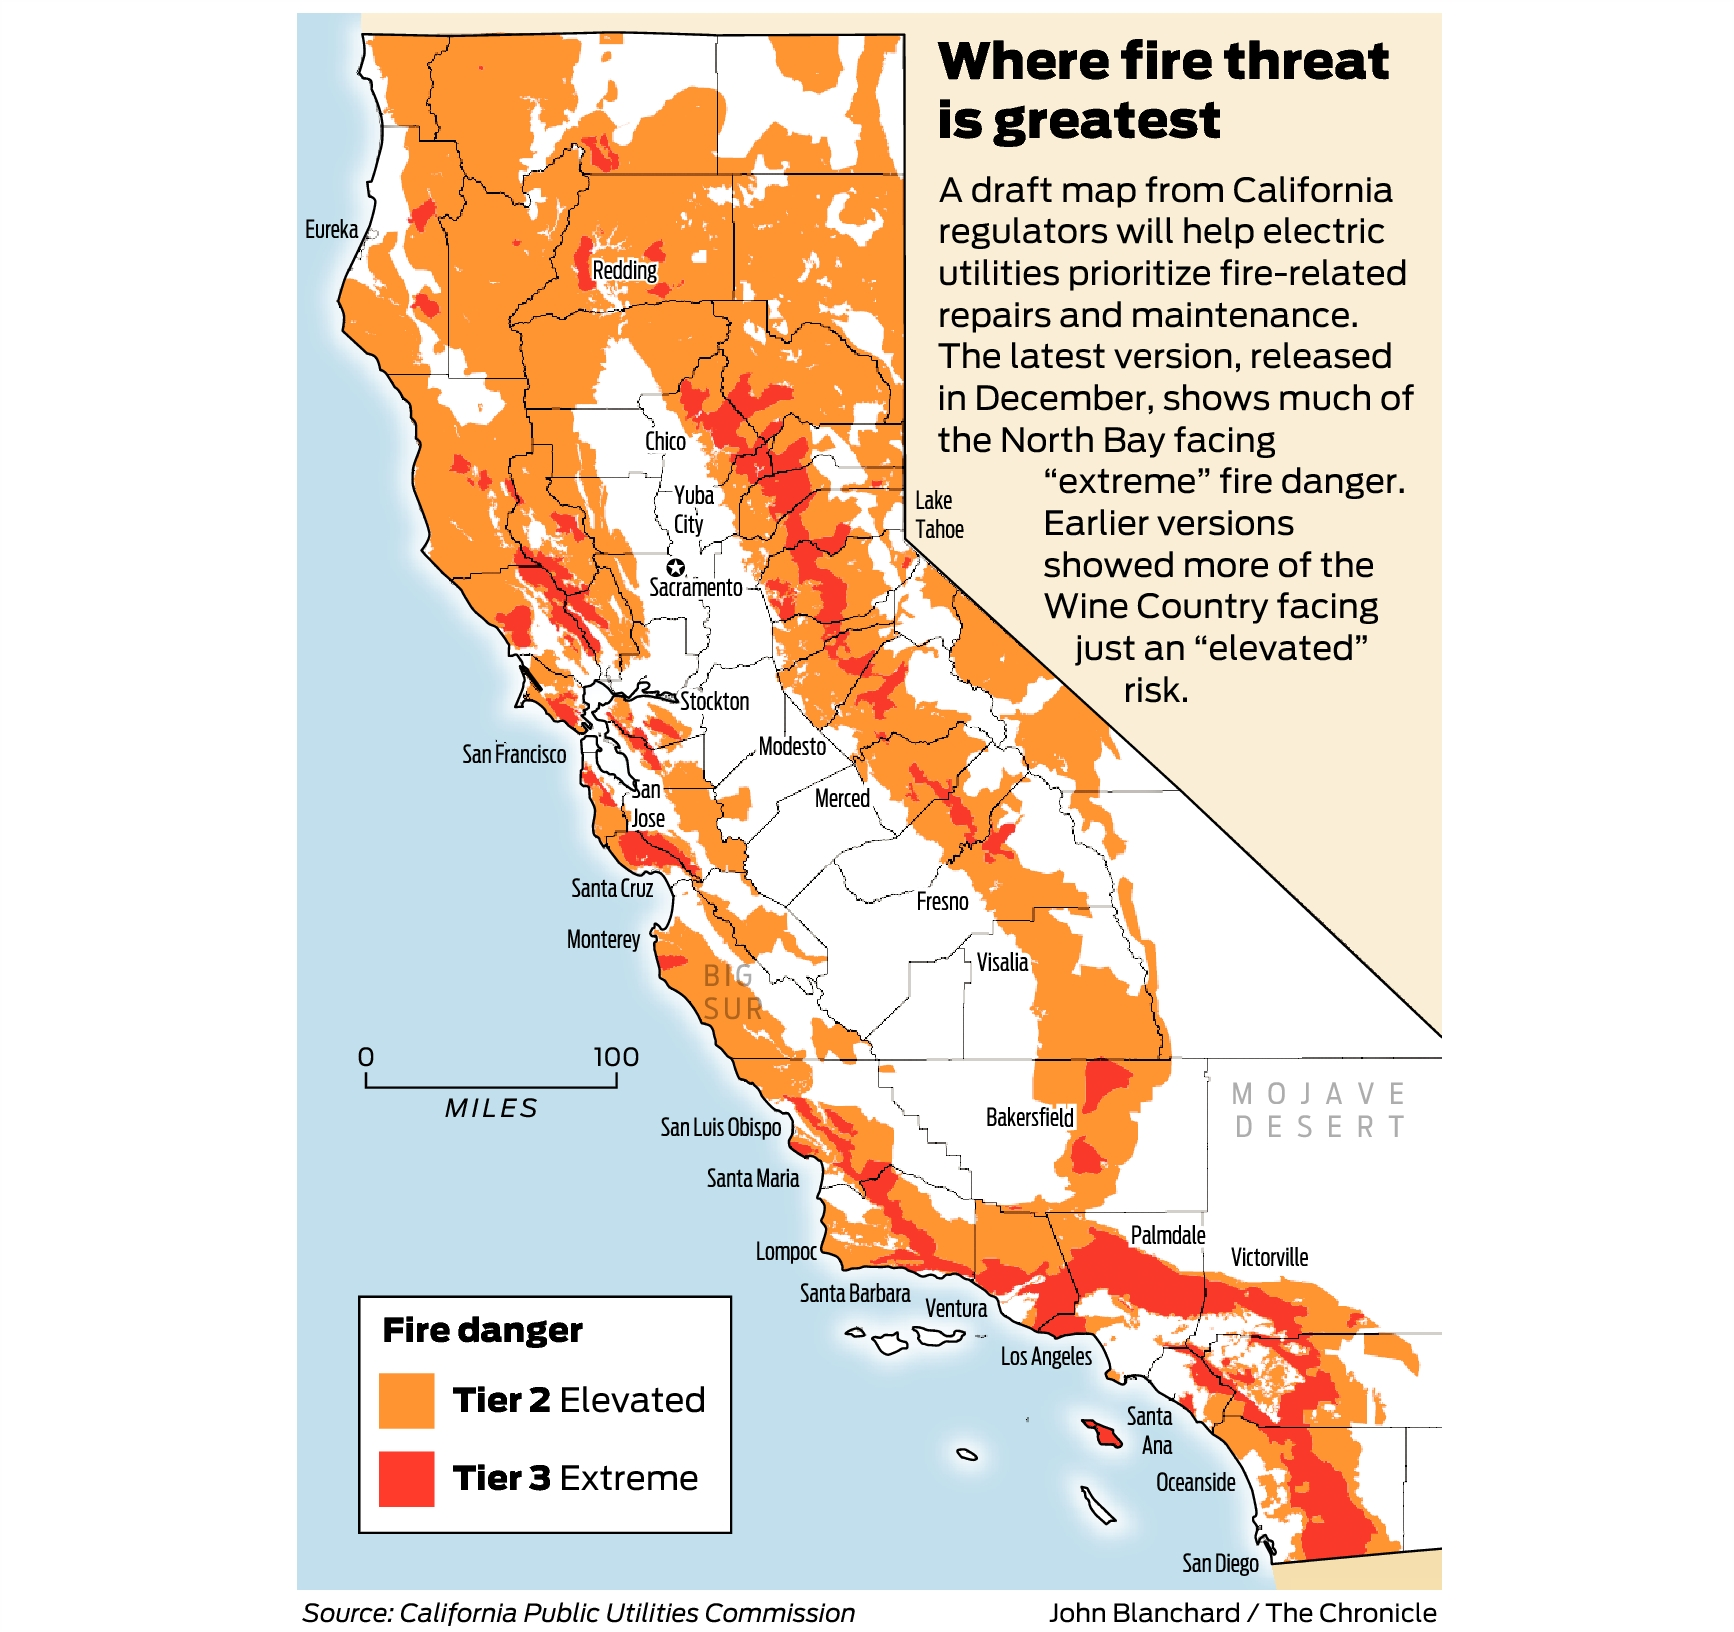 california fire-threat map not quite done but close